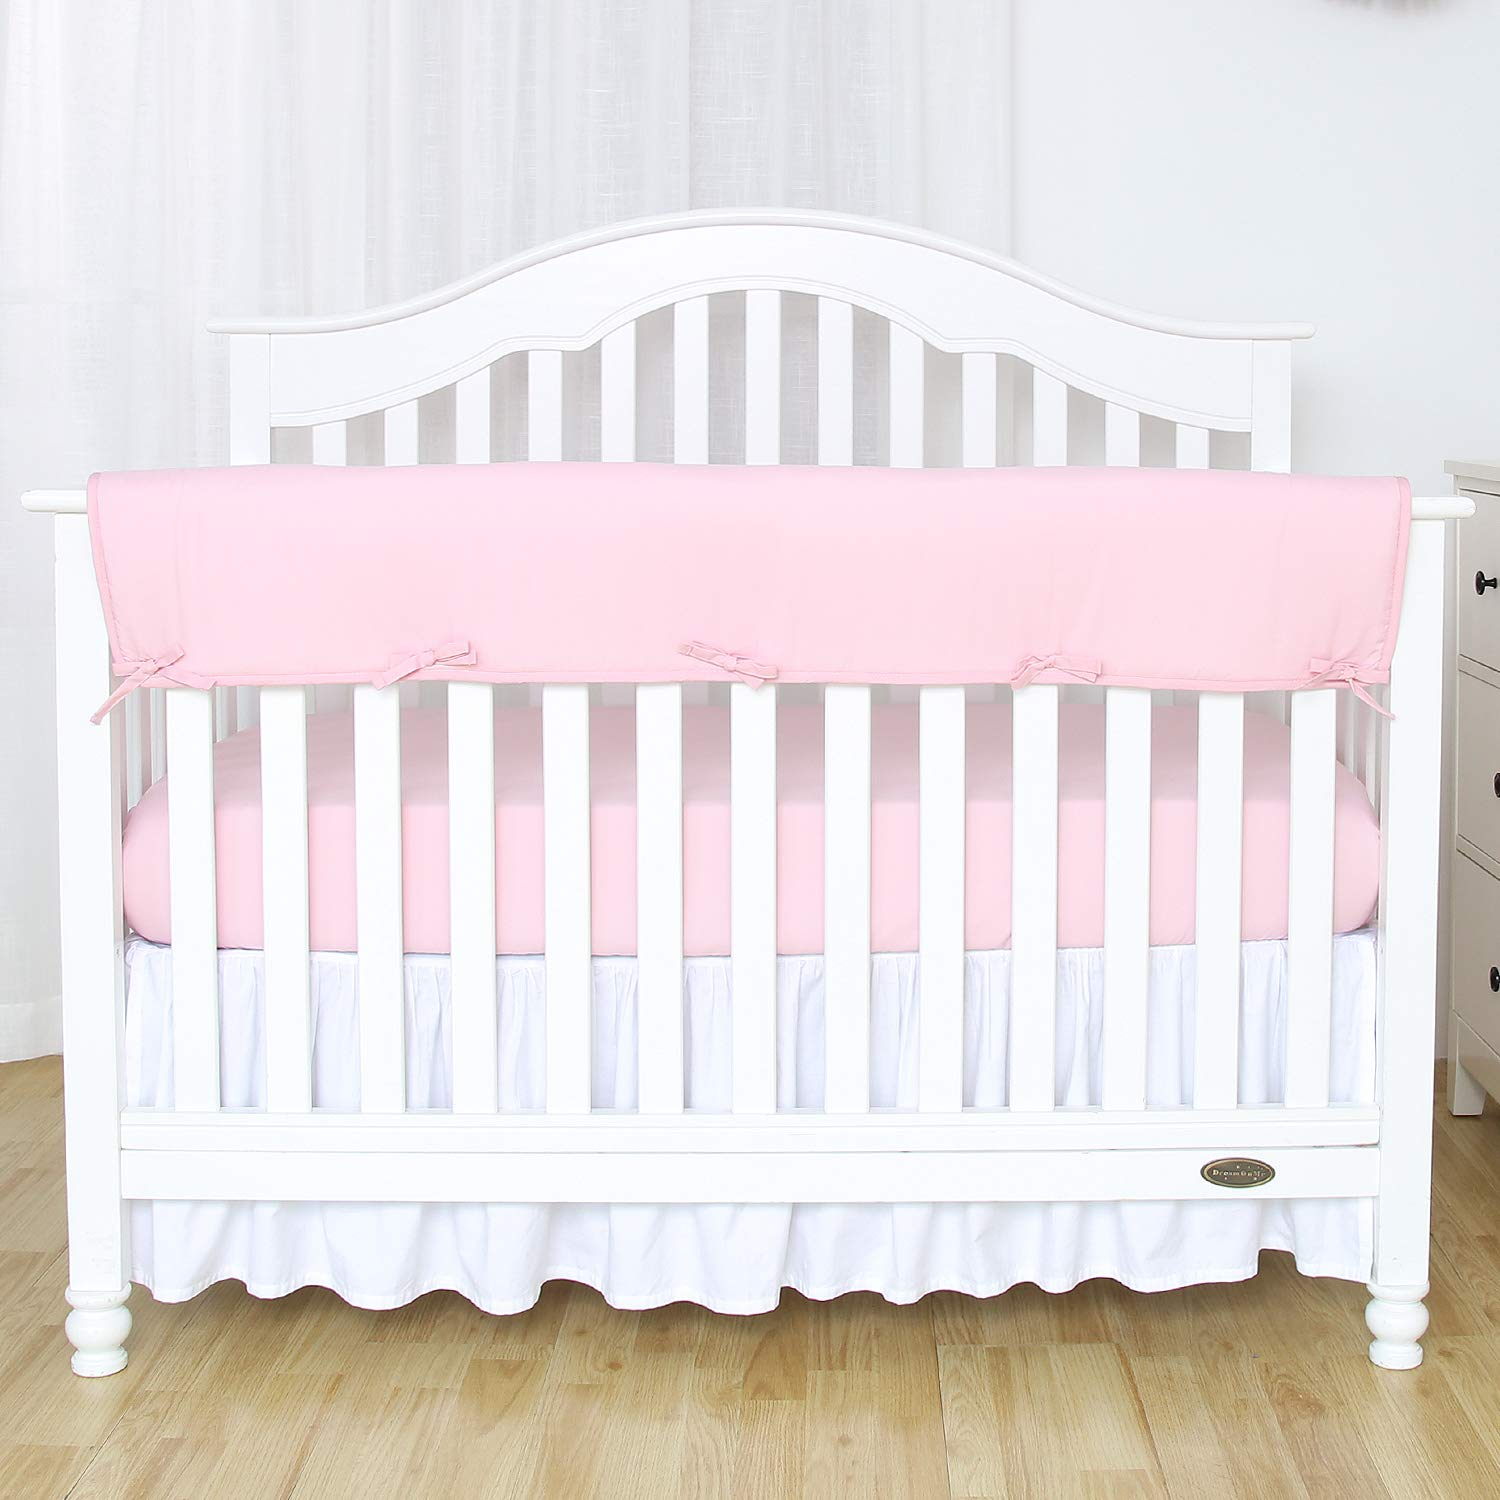 """TILLYOU 1-Pack Padded Baby Crib Rail Cover Protector Safe Teething Guard Wrap for Long Front Crib Rails(Measuring Up to 18"""" Around), 100% Silky Soft Microfiber Polyester, Reversible, Lt Pink/White"""